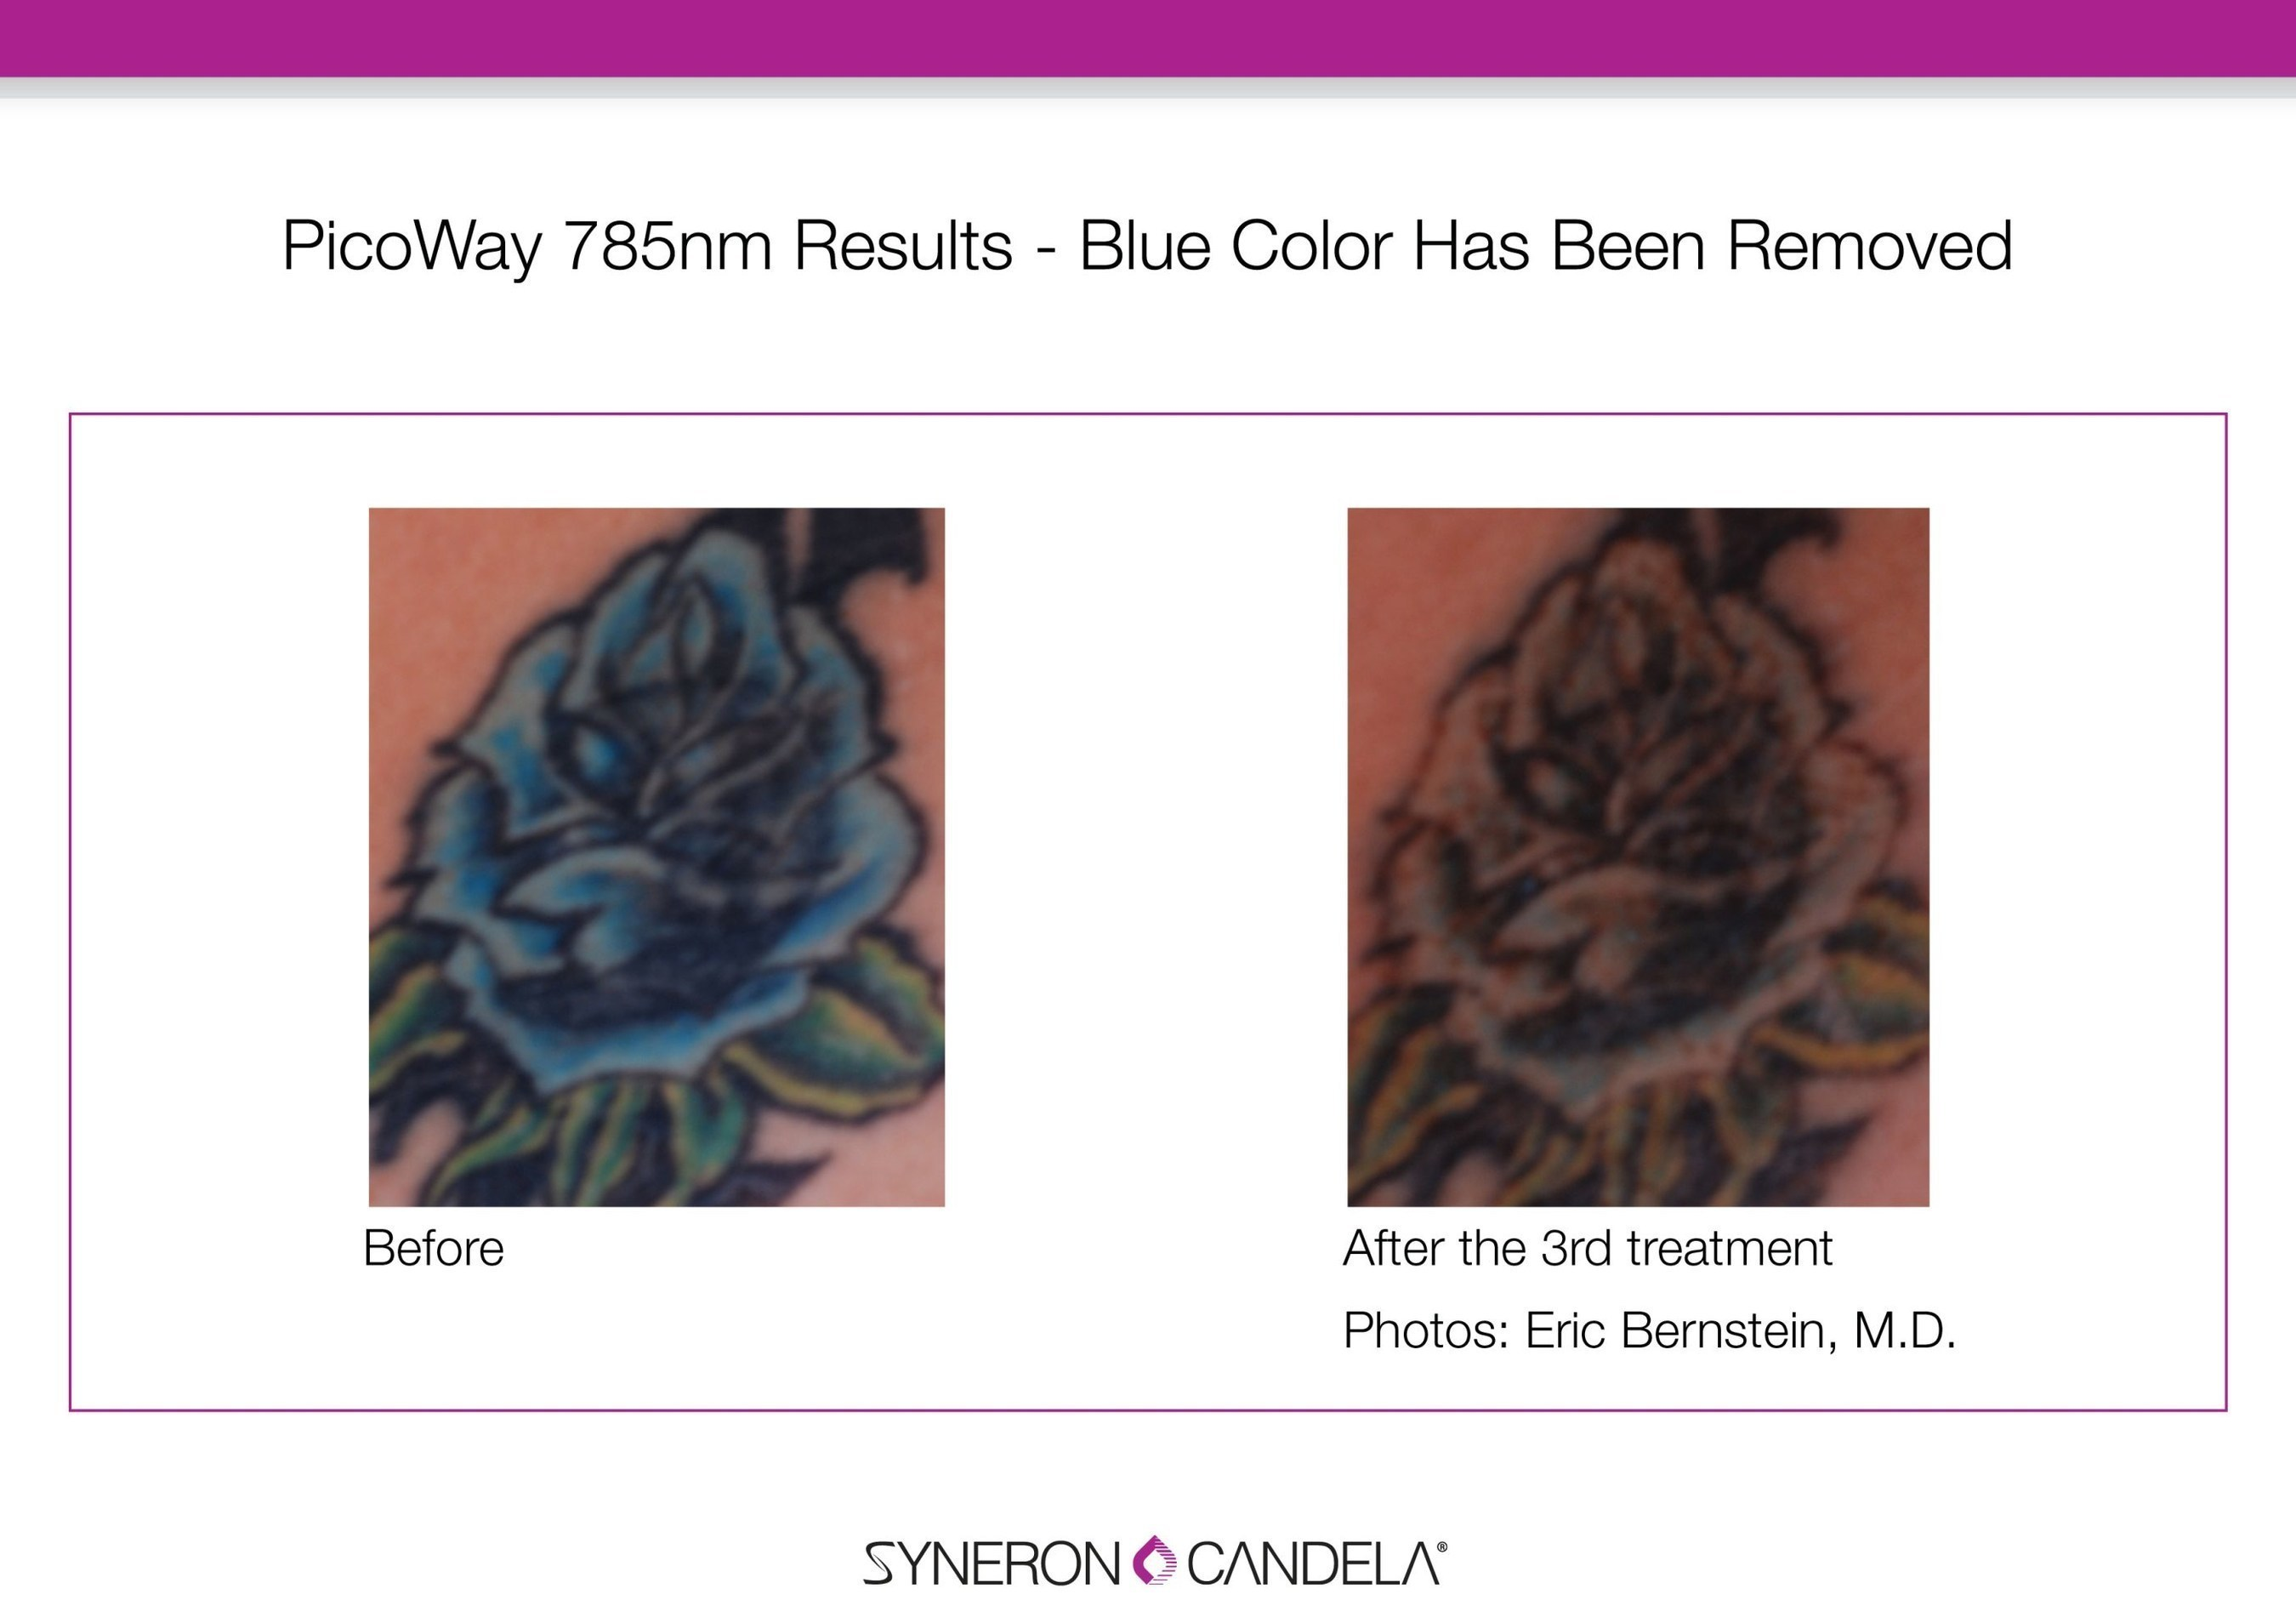 The efficacy and ability of the new 785nm wavelength is shown in this tattoo where the blue and green tattoo inks on the rose and leaves are easily removed in only two treatments.